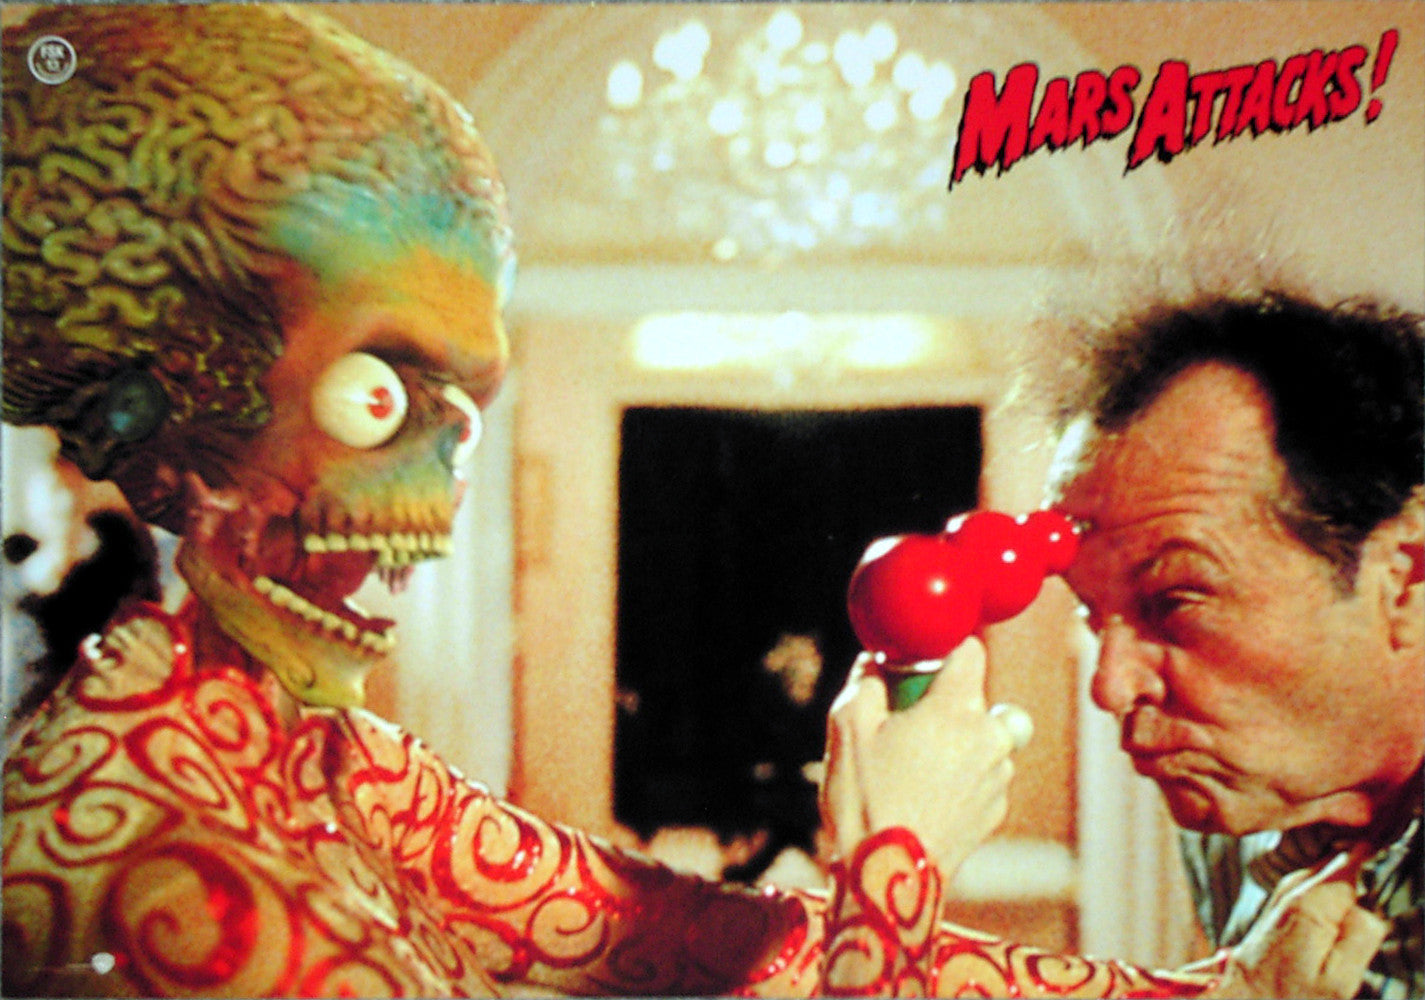 MARS ATTACKS! - German lobby card v3